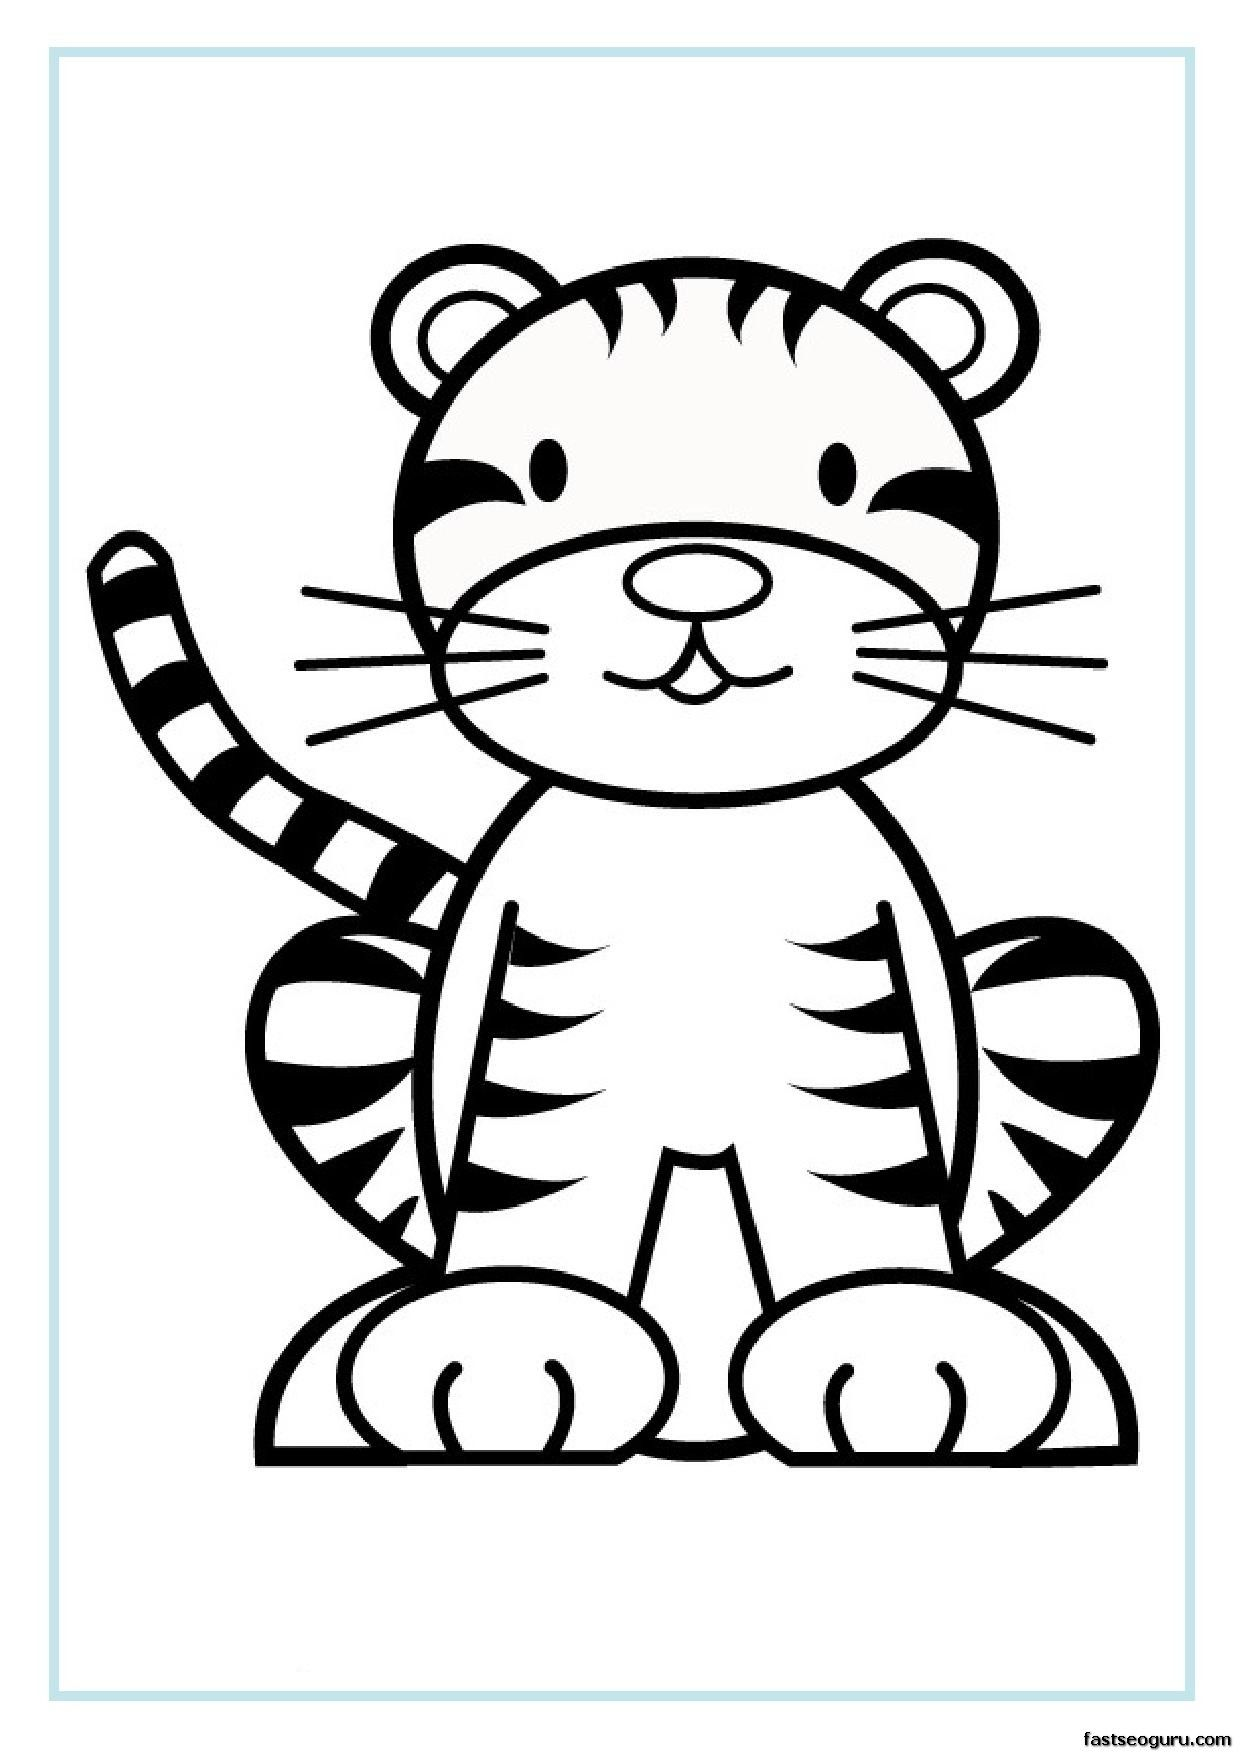 Baby Tiger Coloring Pages For Free Printable Coloring Page